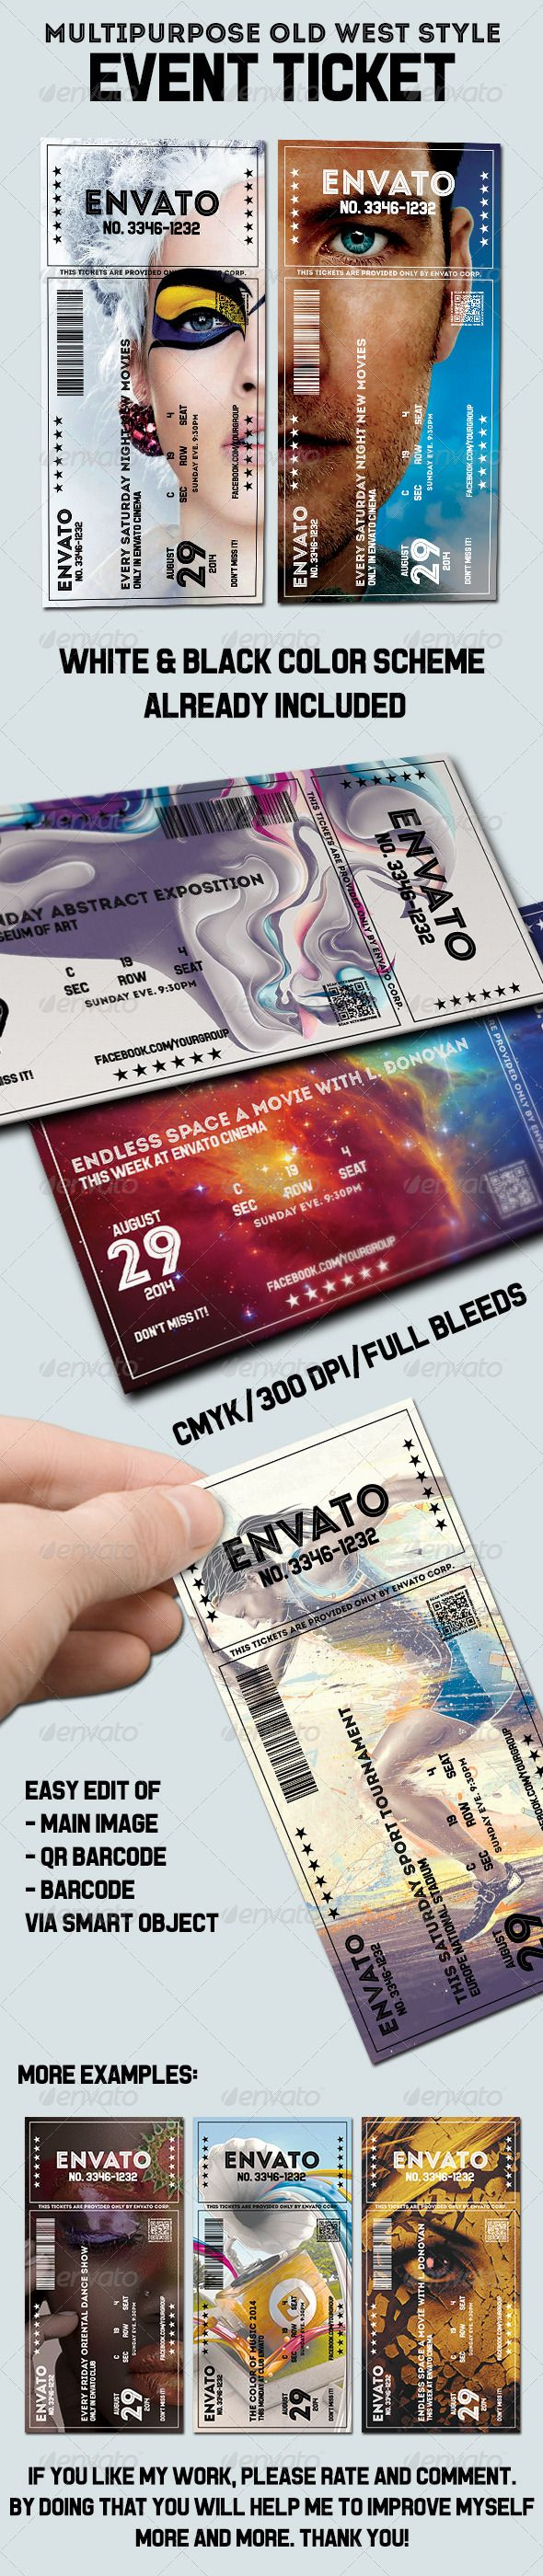 Concert Ticket Template Free Download Captivating 19 Best Voucher Images On Pinterest  Gift Voucher Design Gift .